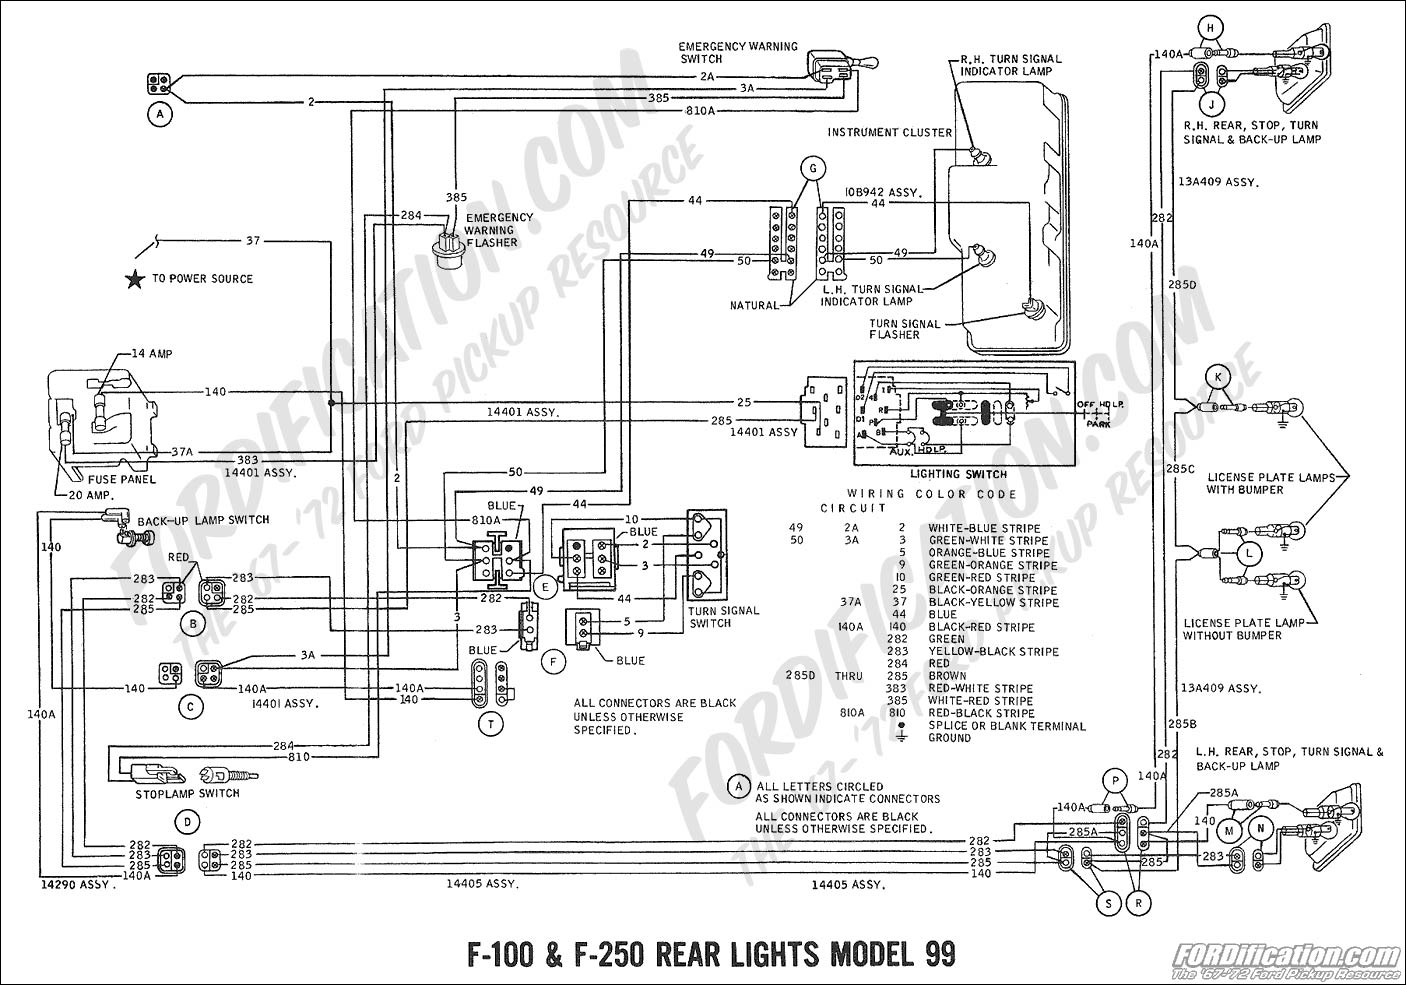 Dodge Caravan 4 0 2009 Specs And Images furthermore Discussion C2786 ds637403 furthermore Honda Civic Fuse Diagram additionally Honda Accord 1995 Honda Accord Timing Belt Change And I Need To Find Tdc as well G2  FAQ  General. on 91 accord engine diagram